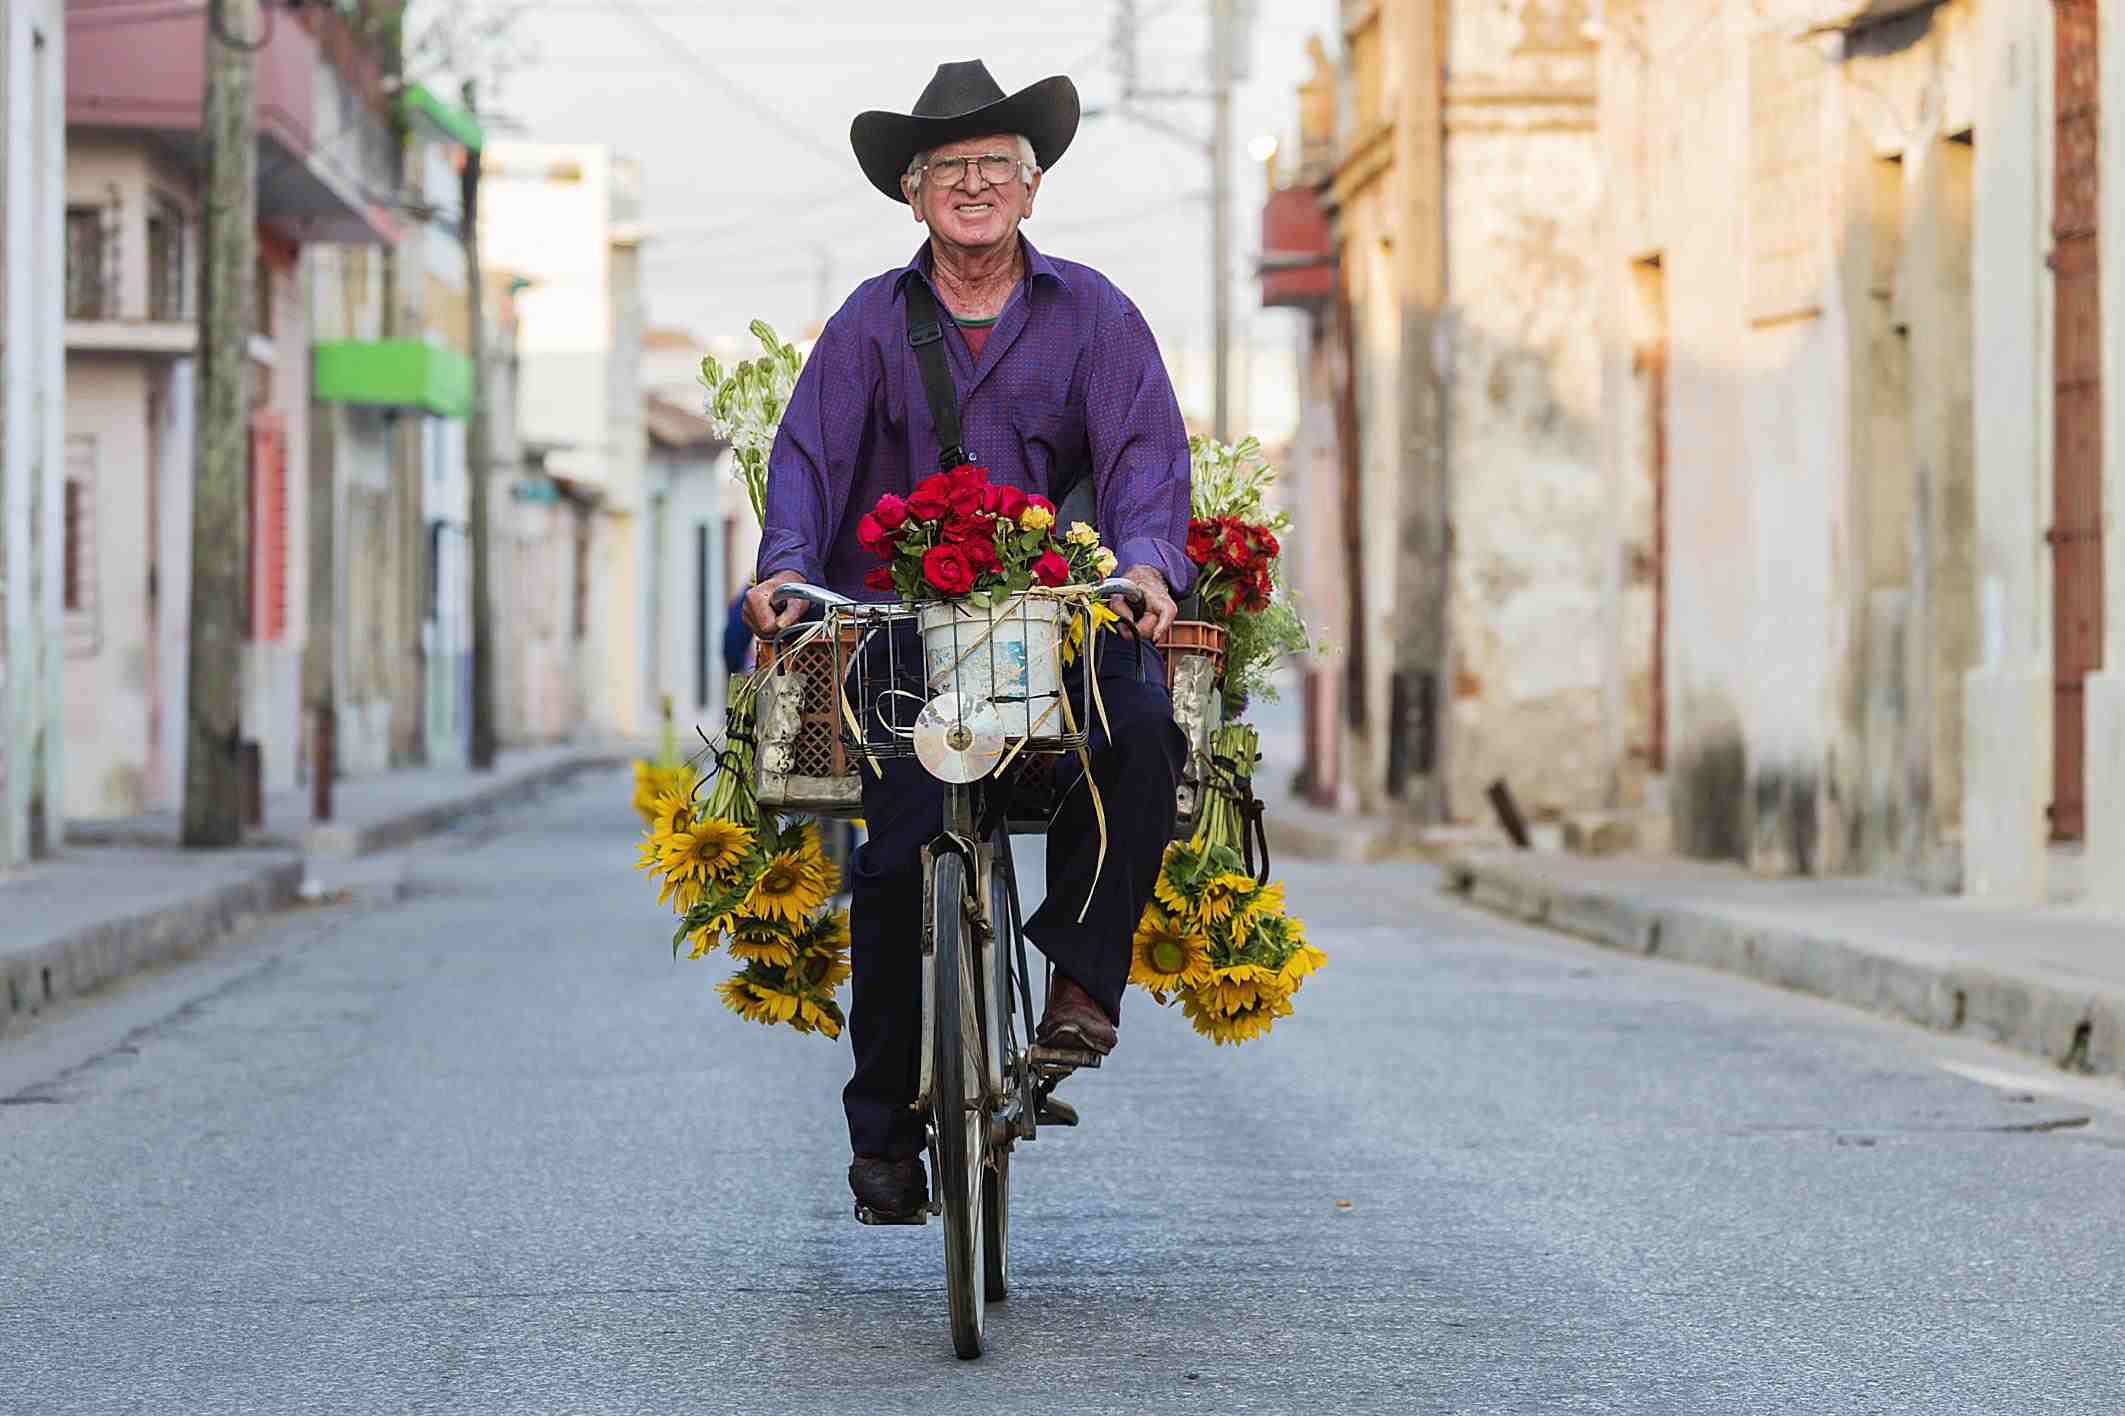 senior man riding a florist delivery bicycle